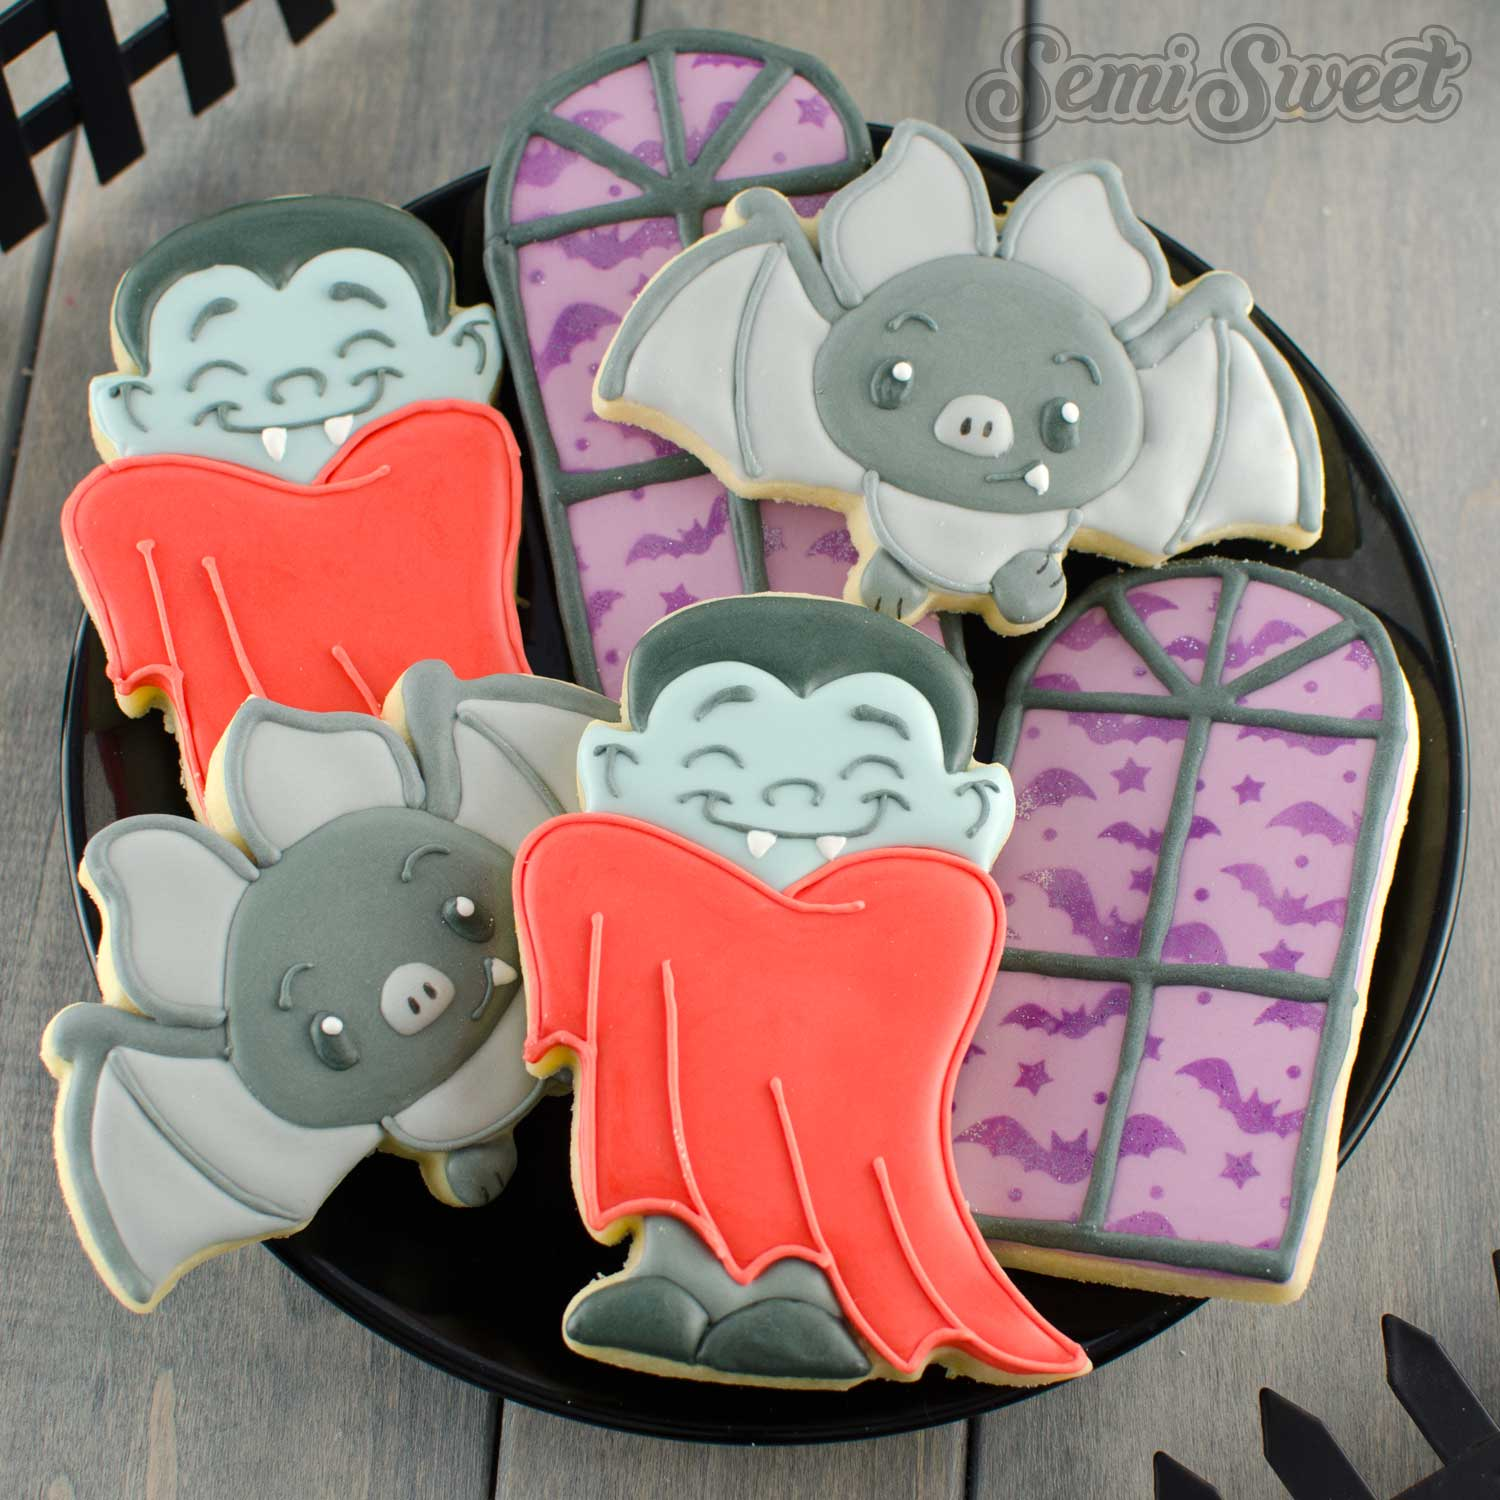 vampire cookie set by SemiSweetDesigns.com